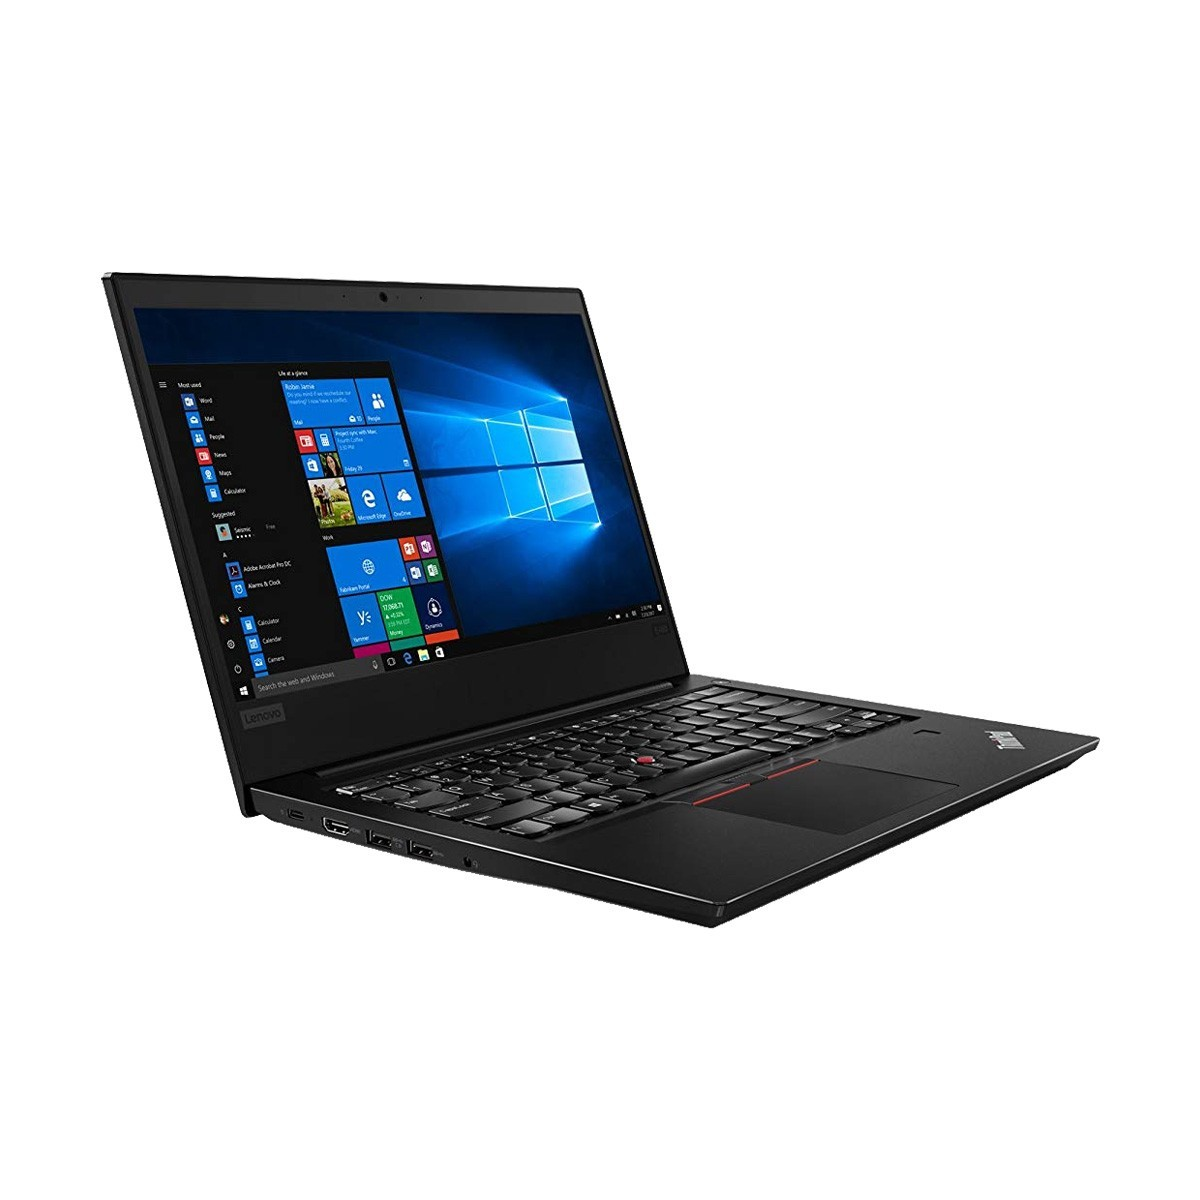 Lenovo ThinkPad E480 Intel Core i5-8250U GPU Processor 1 60